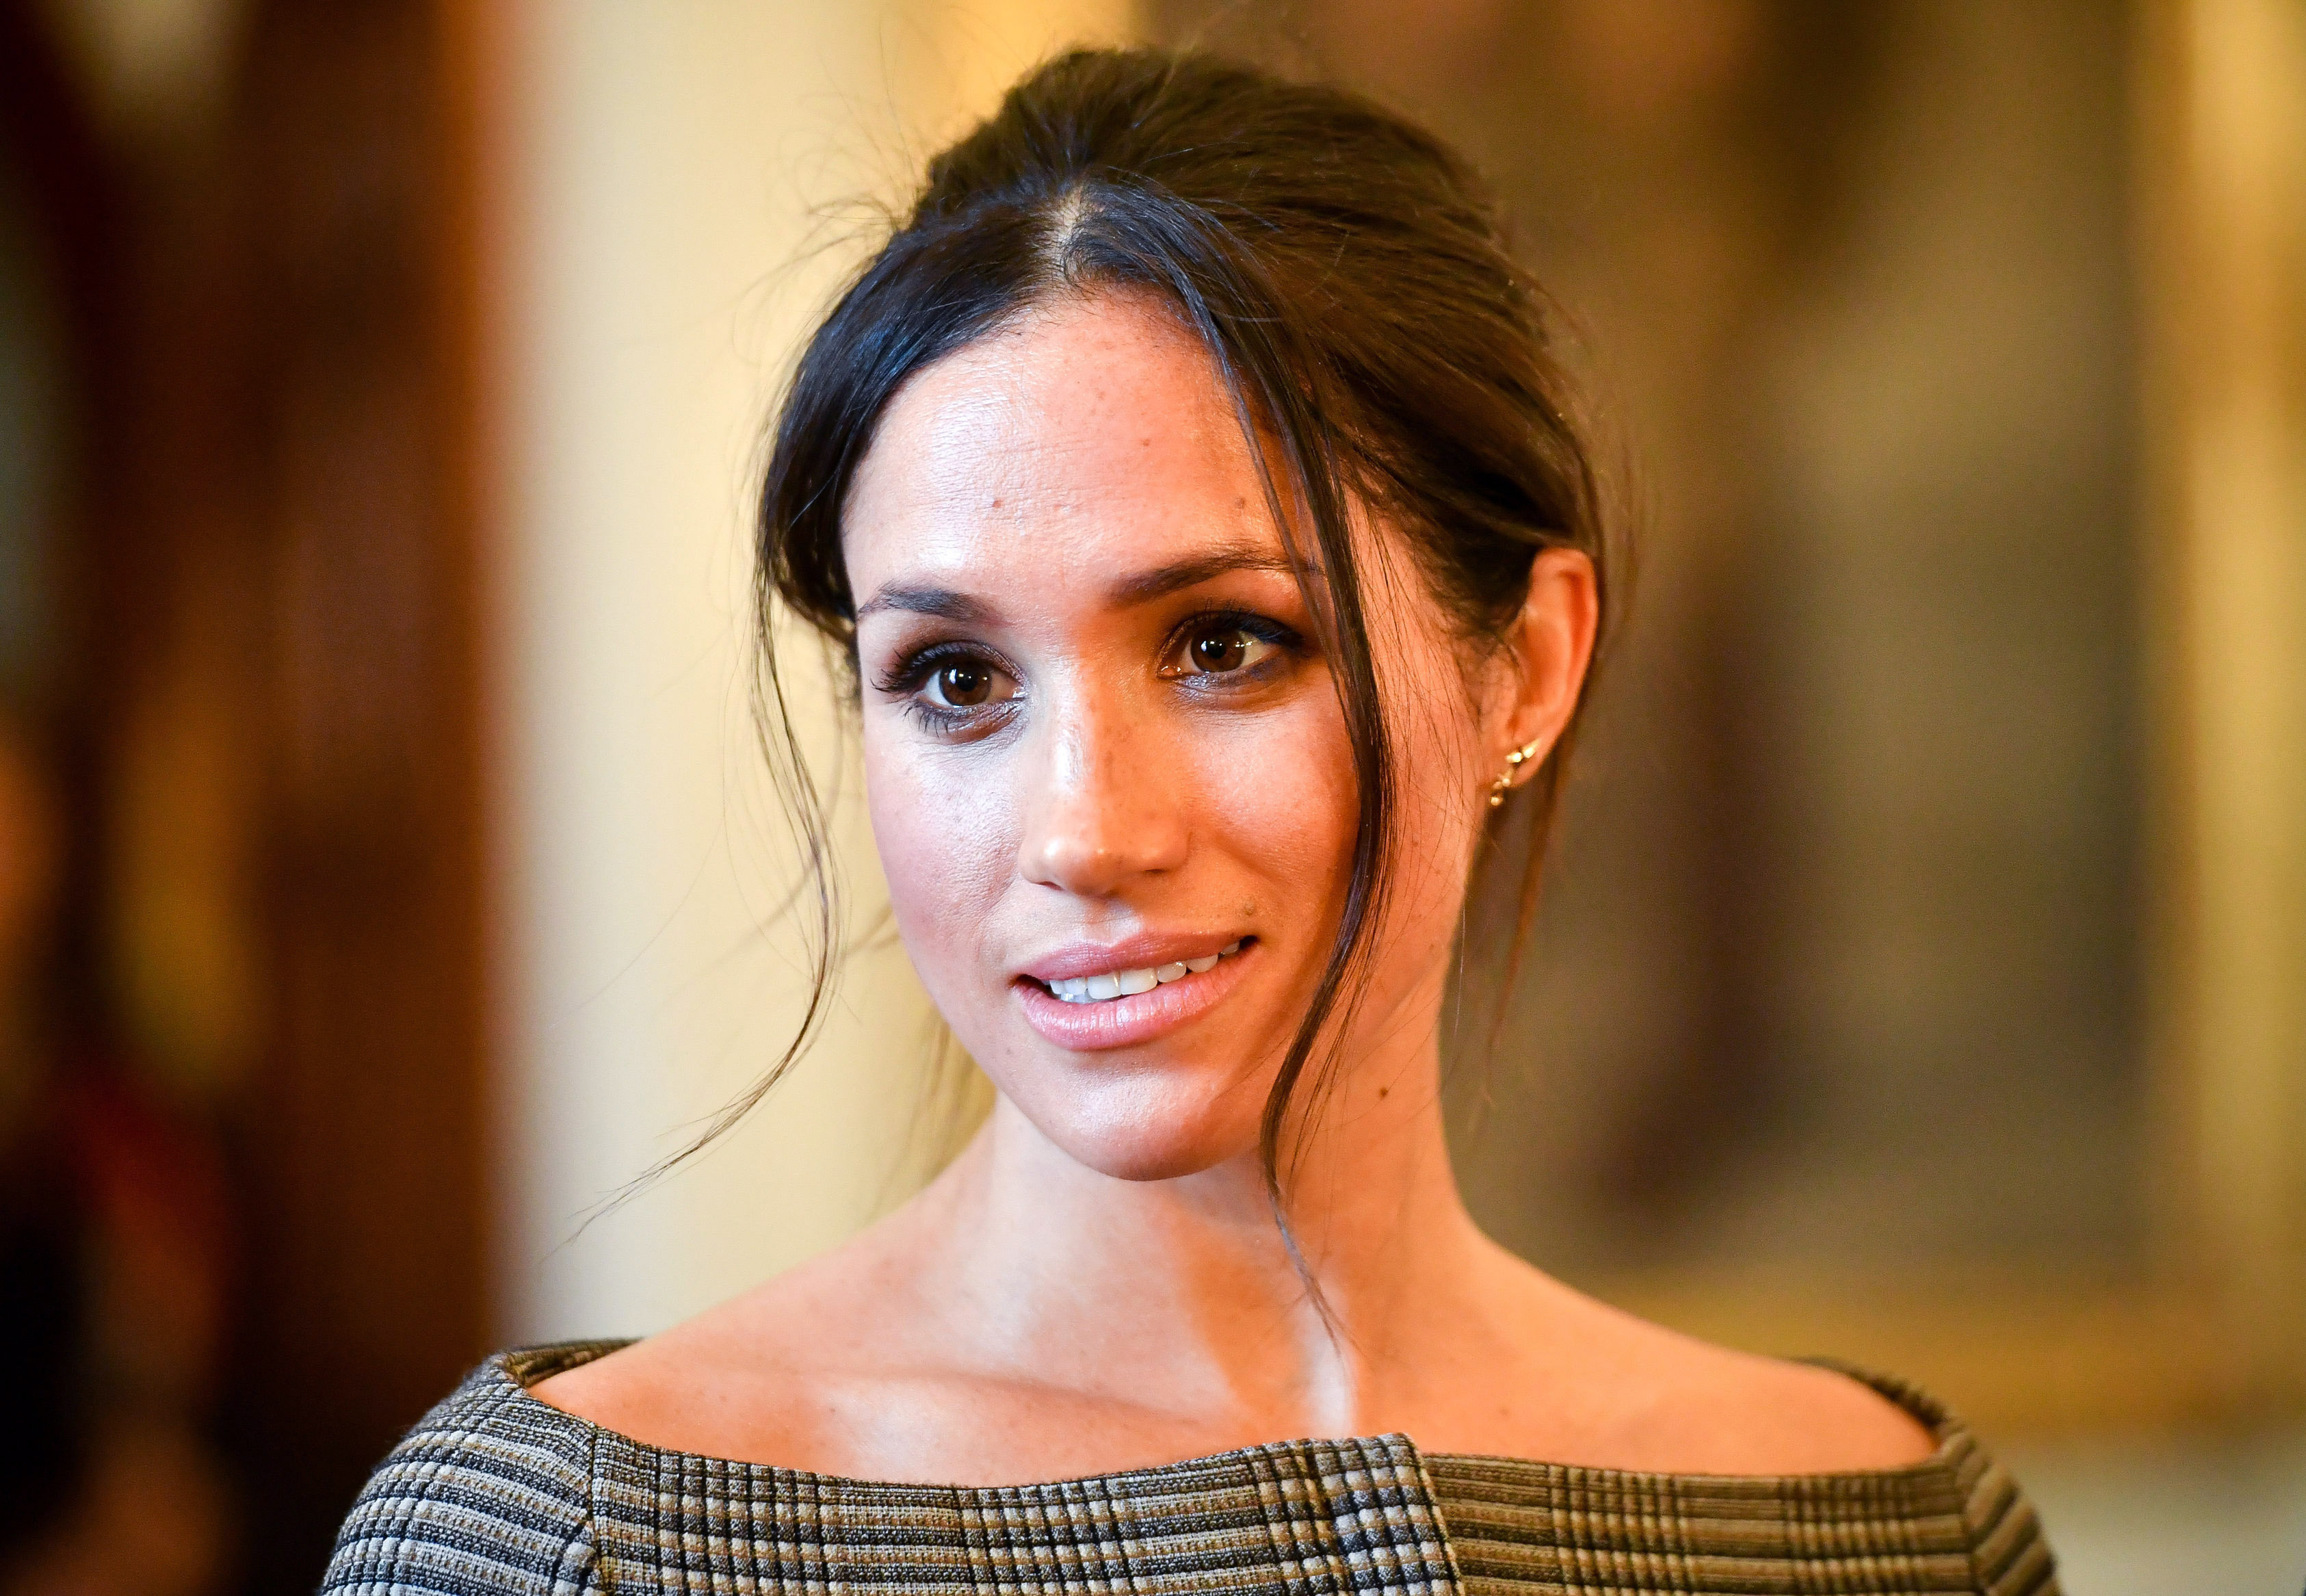 Meghan Markle has denied claims that her father contacted her before the royal wedding